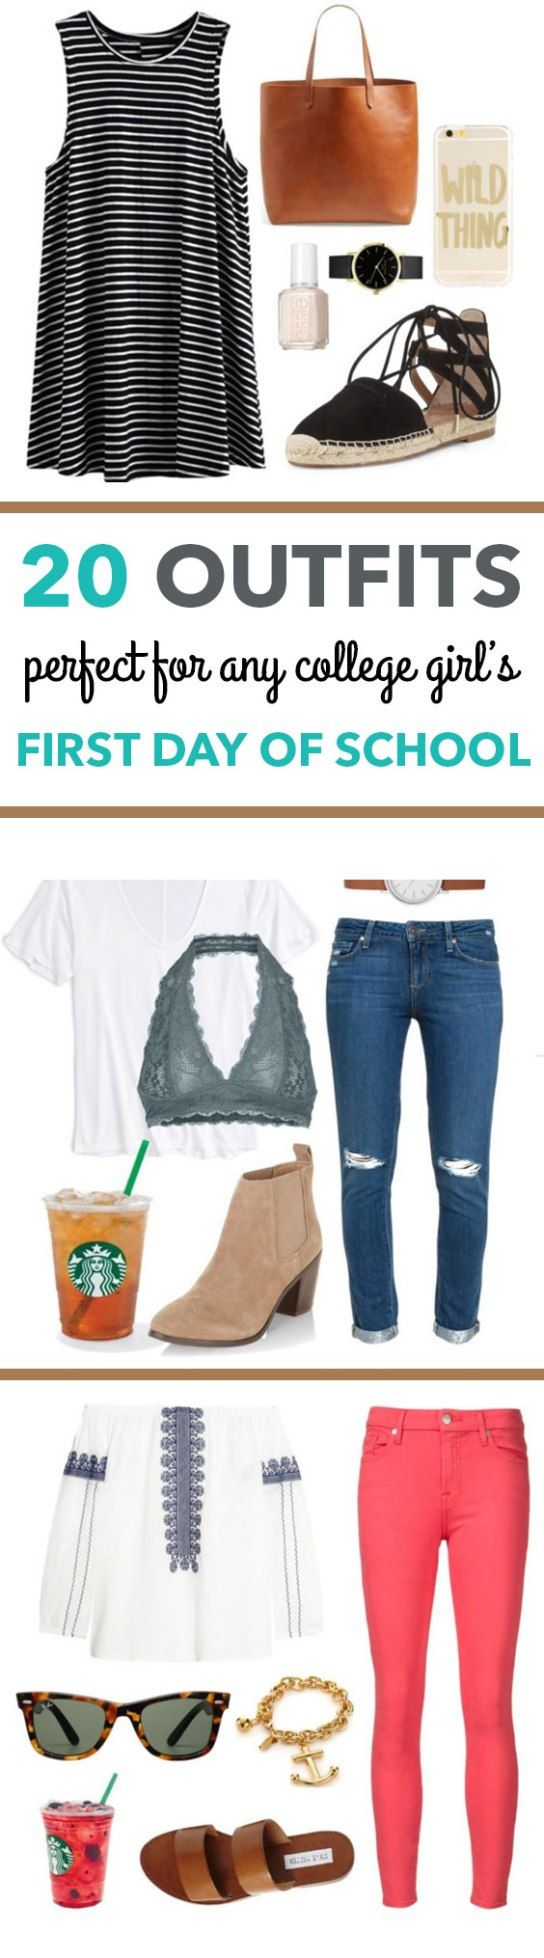 If you're anything like me, the thought of August being right around the corner gives you a lasting case of the Sunday Scaries. Anxiety aside, going back to school does have its perks—new clothes being one of them. Before you go shopping for your first...